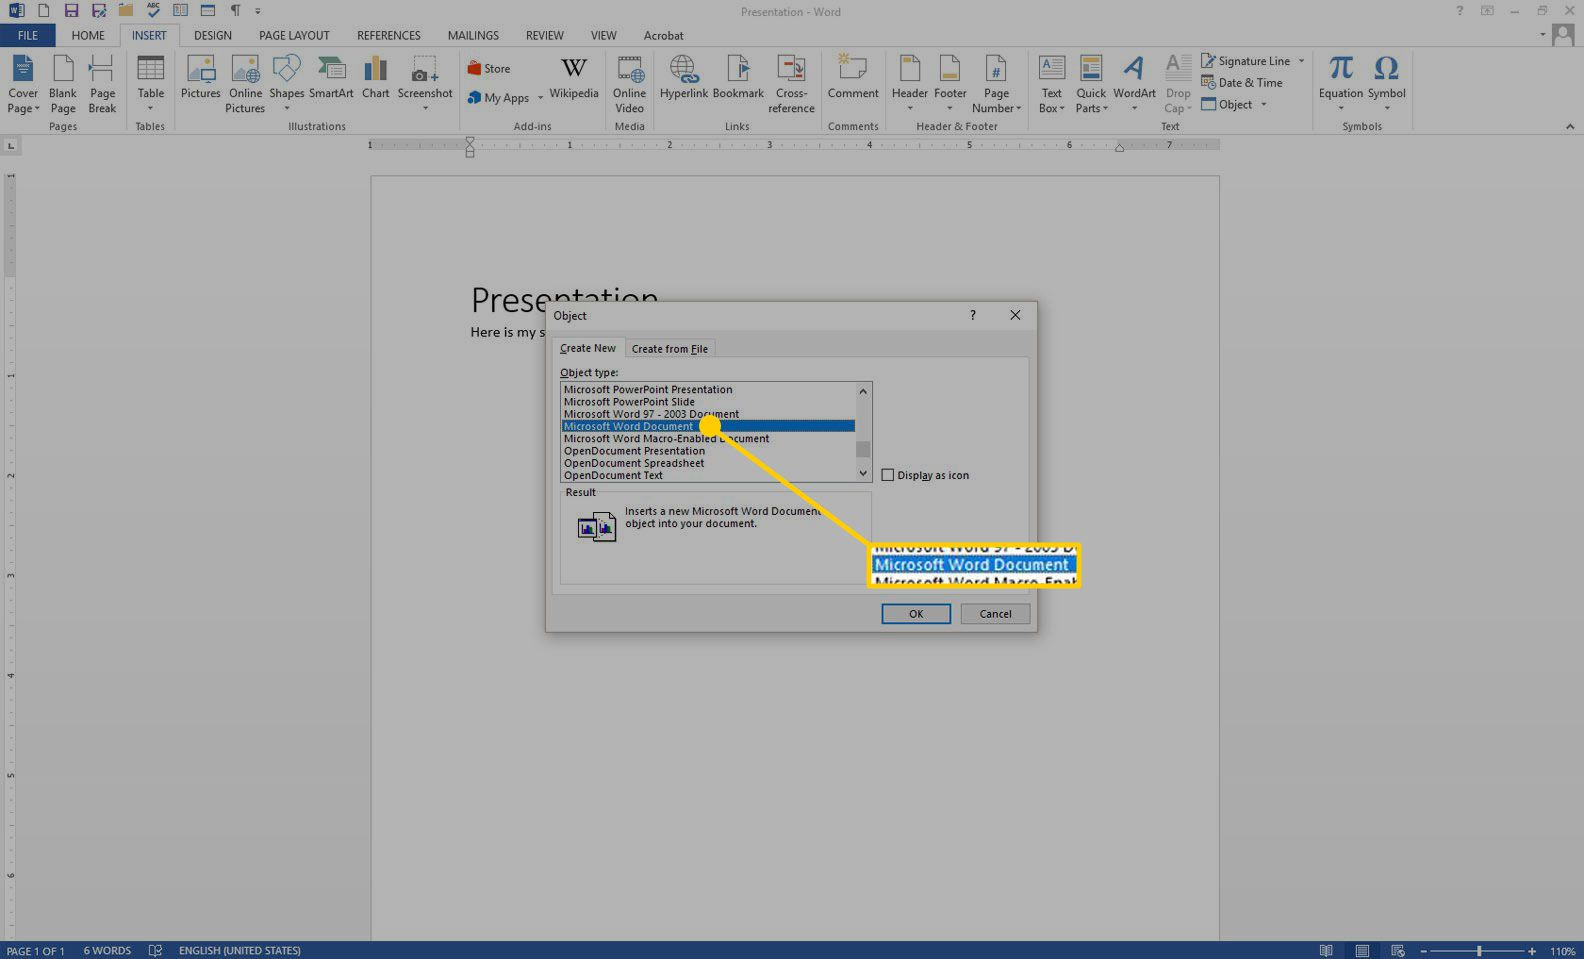 Create New Object box in Word with the Microsoft Word Document option highlighted